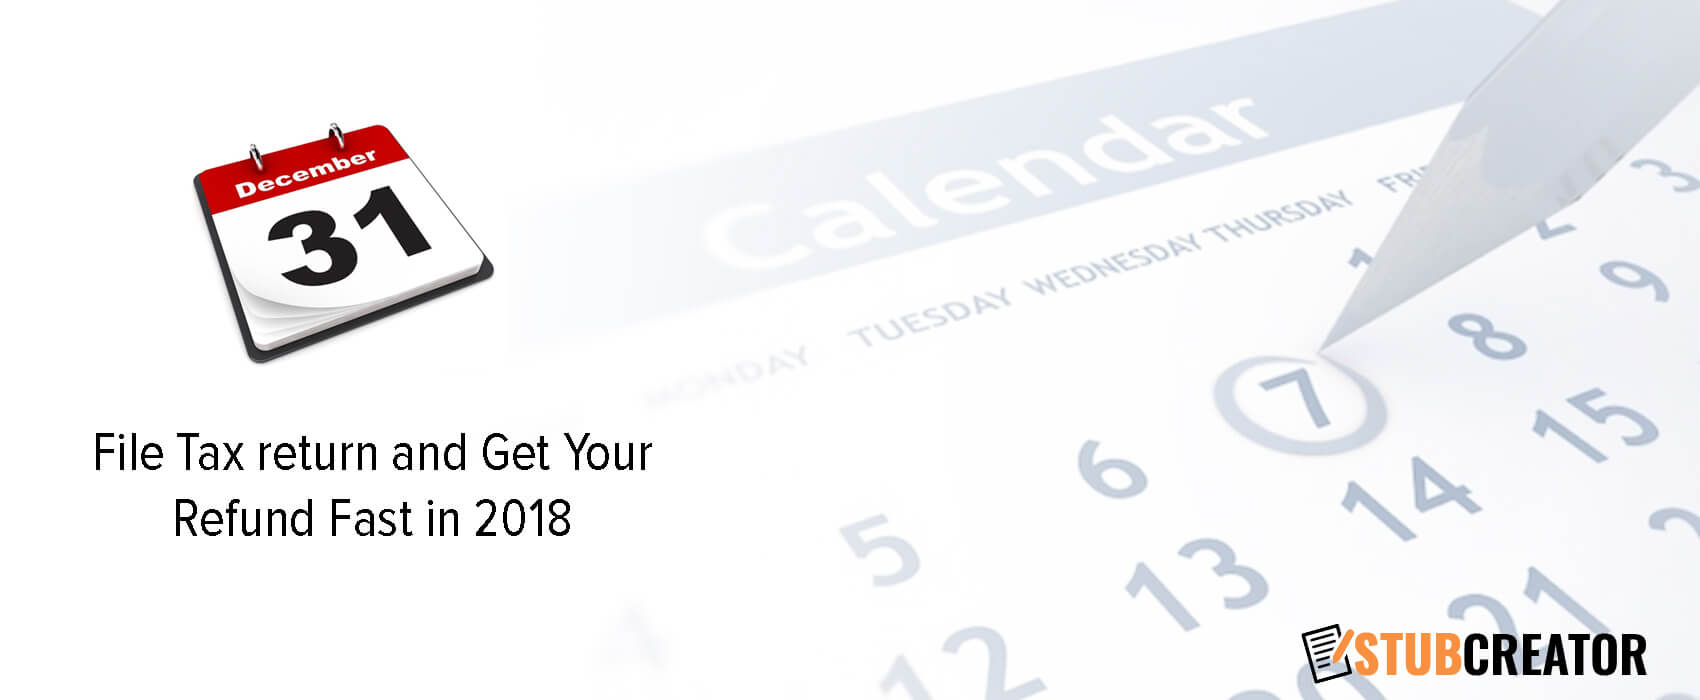 File Tax return and Get Your Refund Fast in 2018